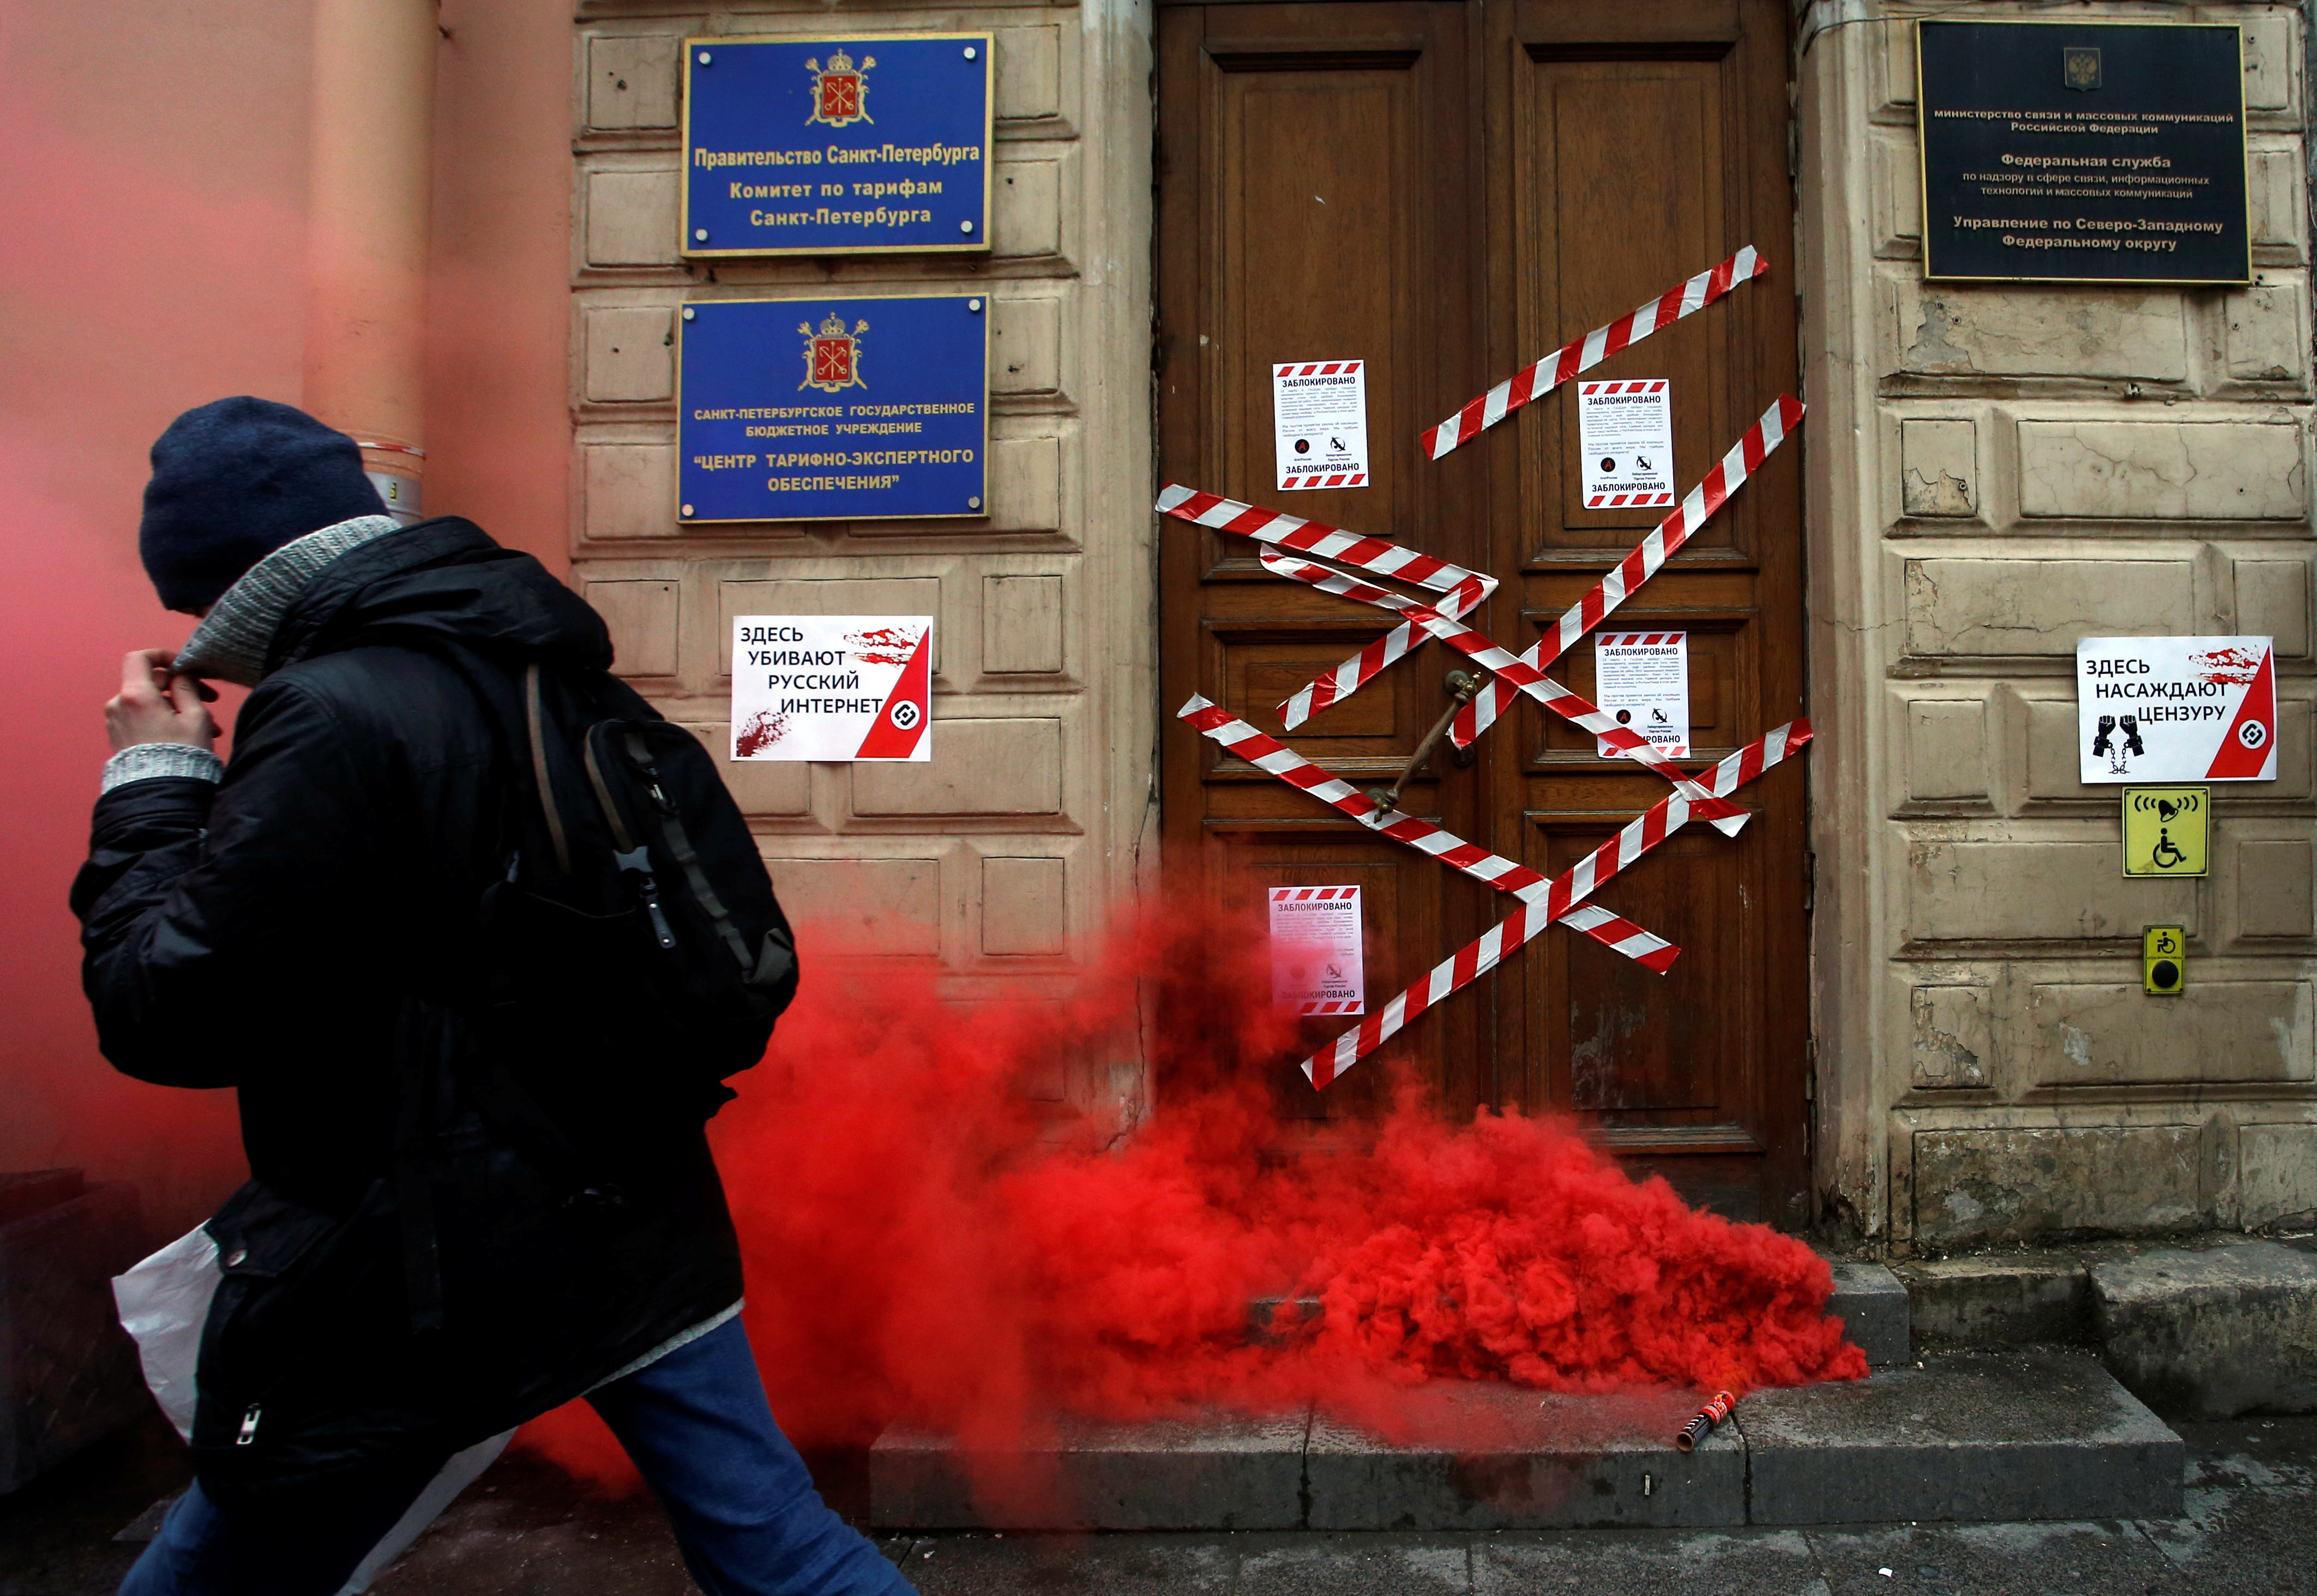 A protester walks away from a door with smoke in front of it.